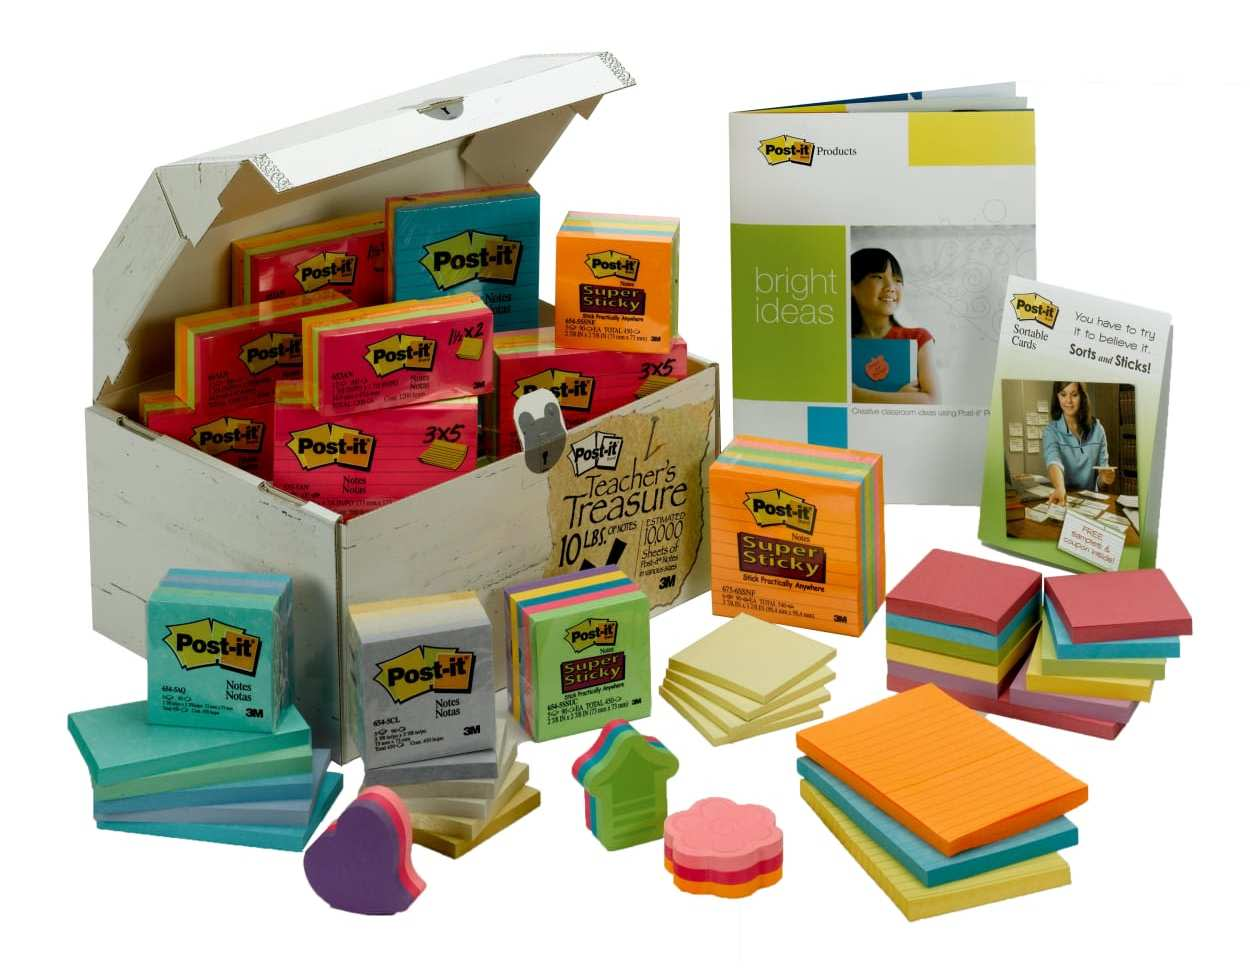 Post-it Notes 10-lb. Treasure Chest Value Pack